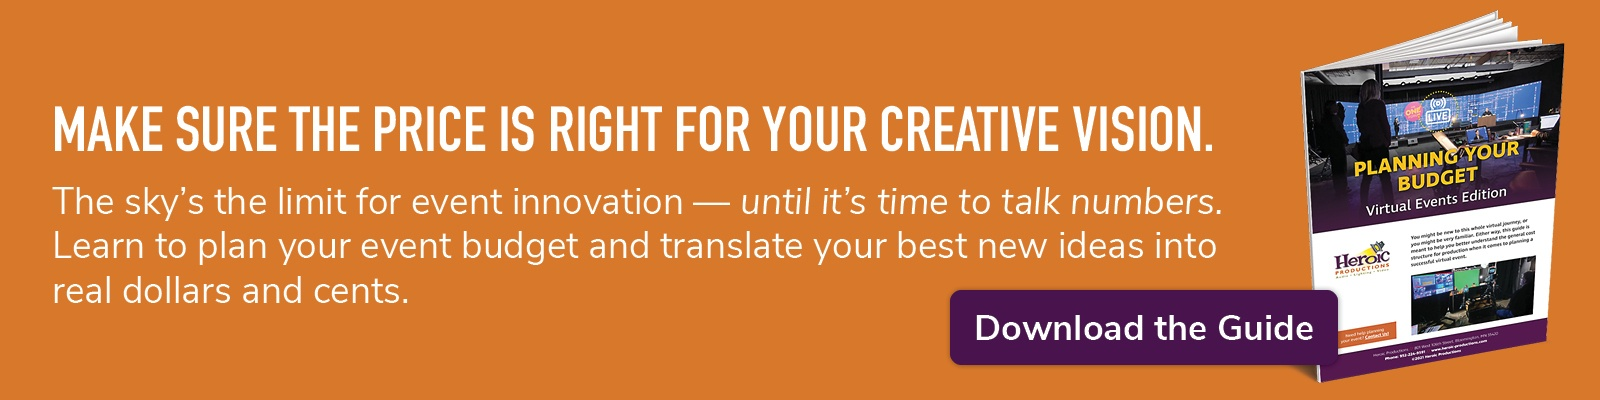 make sure the price is right for your creative vision; download the guide